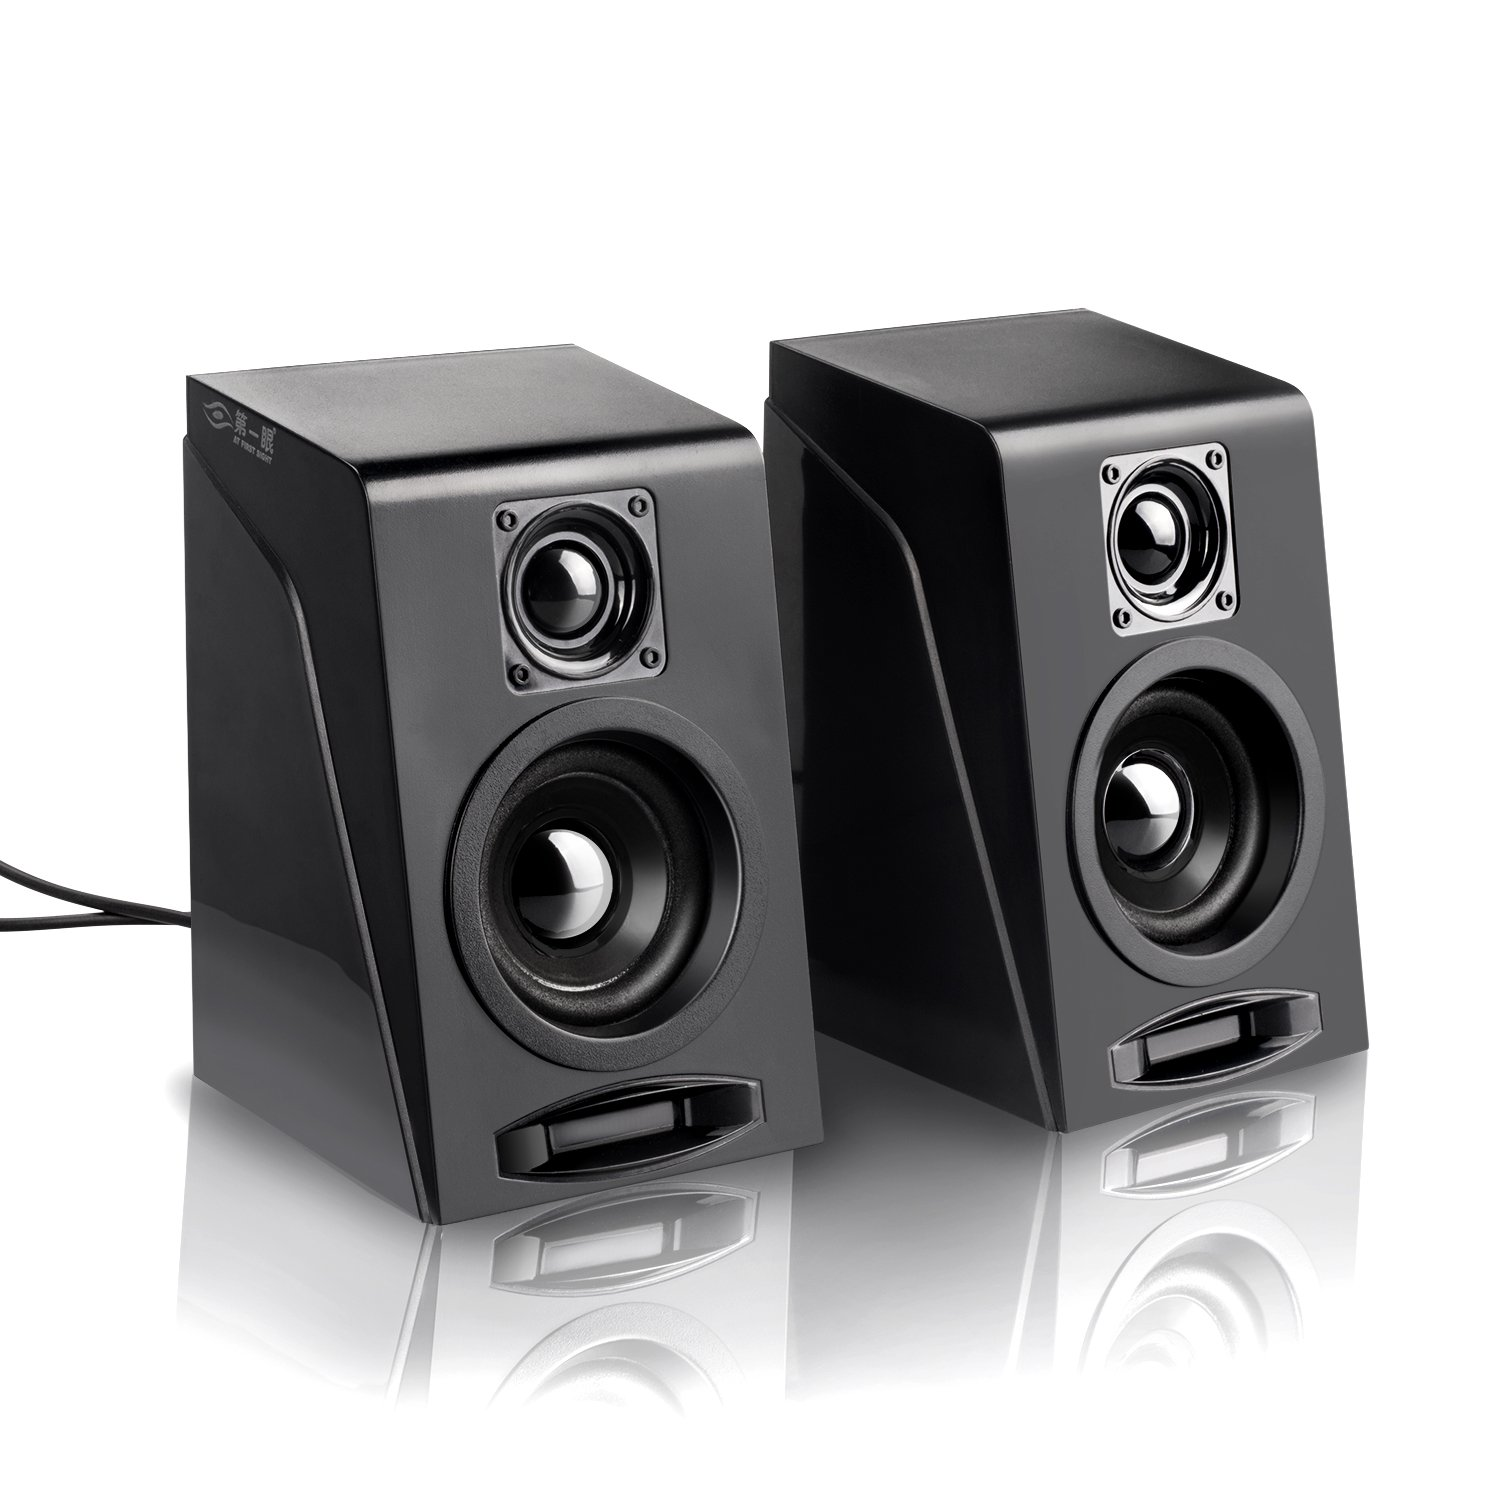 USB Powered Computer Speakers, Wired Stereo Desktop Bookshelf Laptop Speakers with Volume Control Ideal for Notebook, Laptop, PC, Desktop Tablet by Meetuo (Image #2)